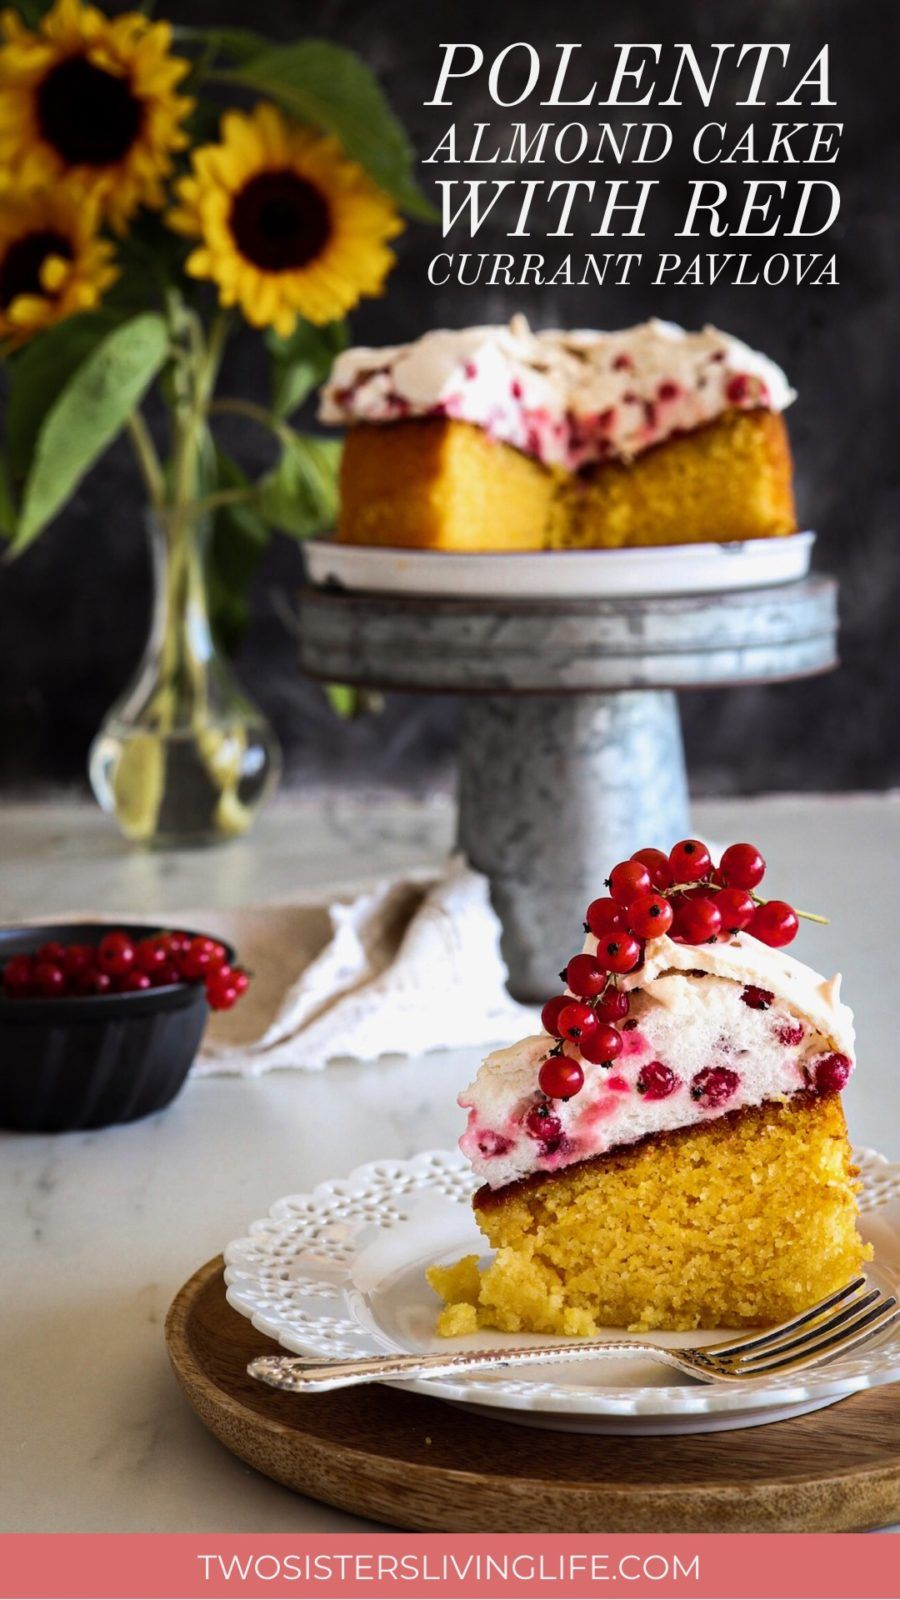 This is a delicious recipe for a Polenta Almond Lemon Cake with Red Currants Pavlova Crown. It's ideal for special occasions and gluten-free.